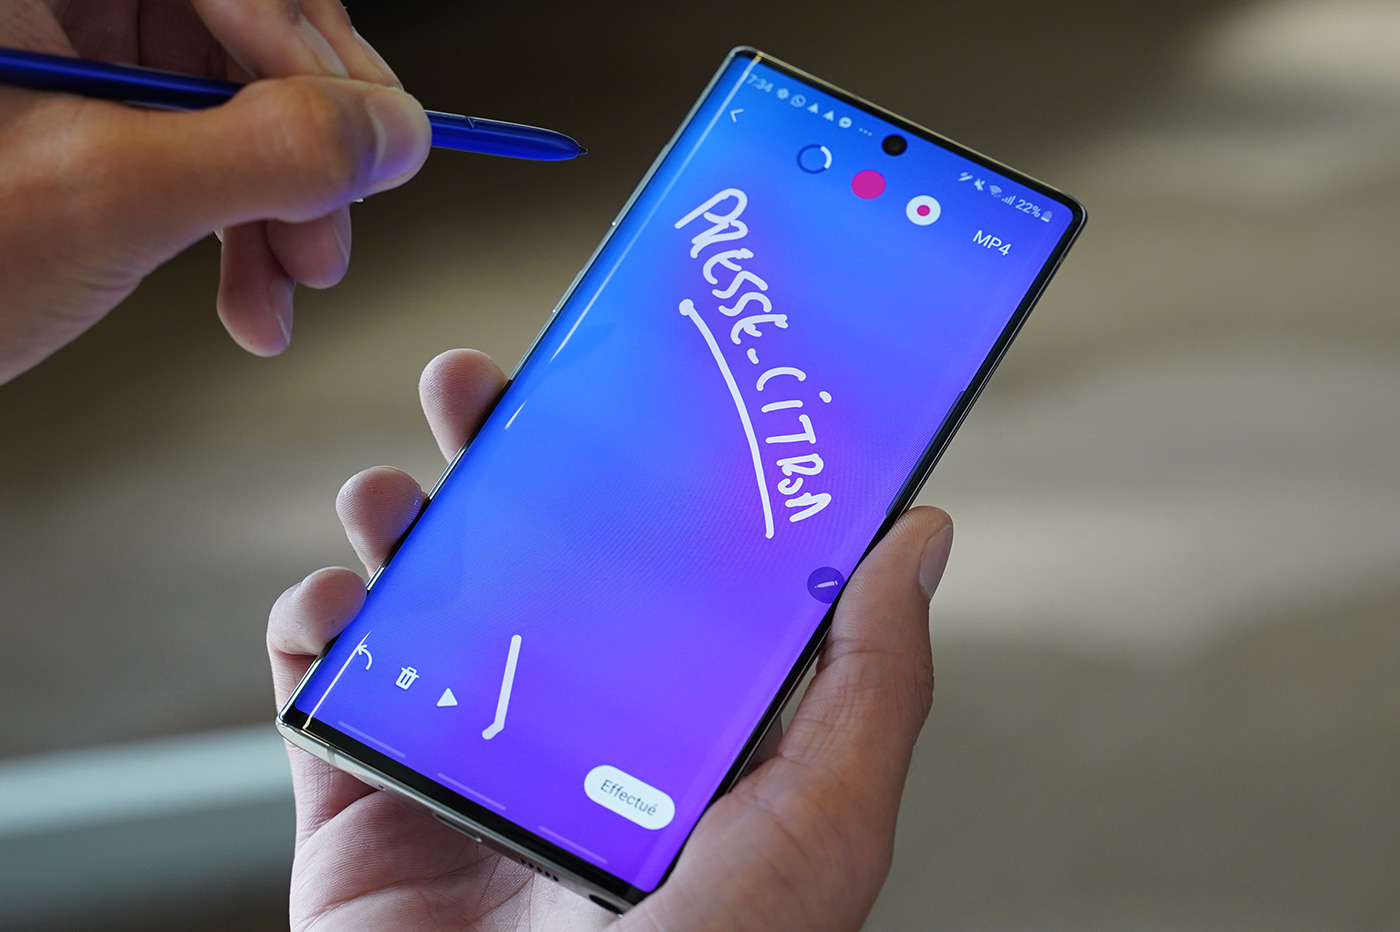 Stylet Note 10